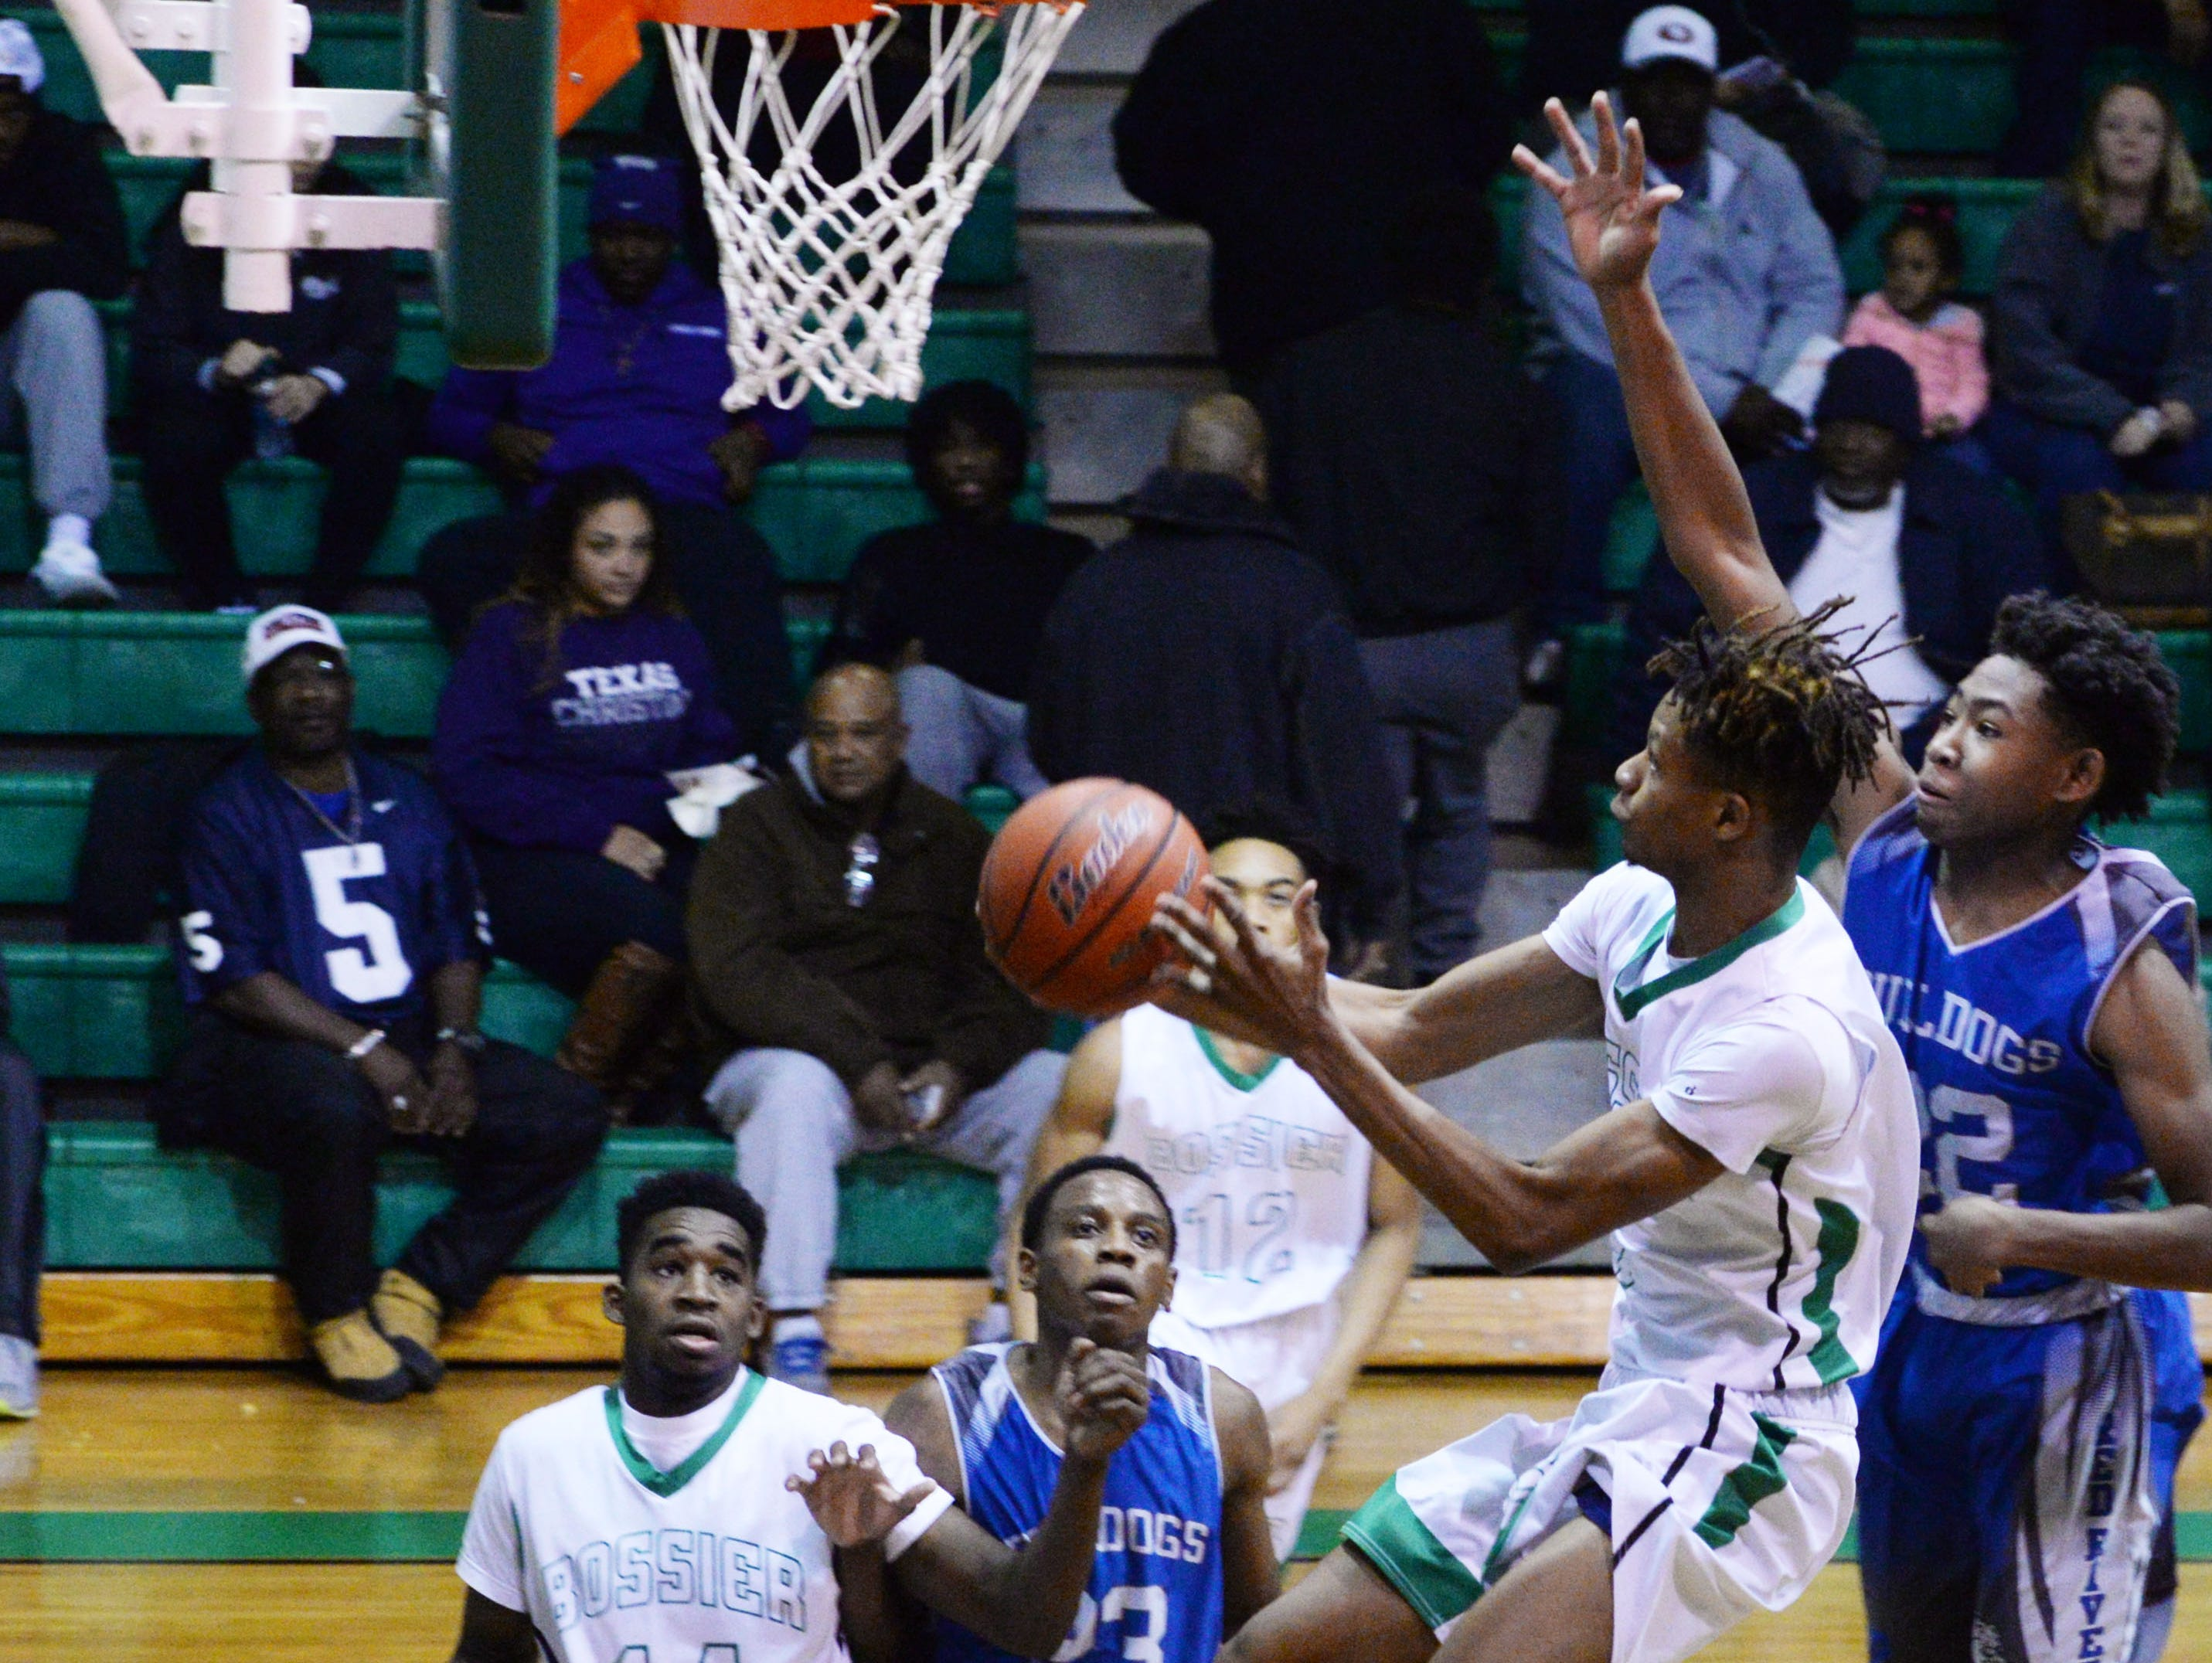 Bossier's TyBo Wimberly tries to get the ball in the basket during their game against Red River Friday evening.